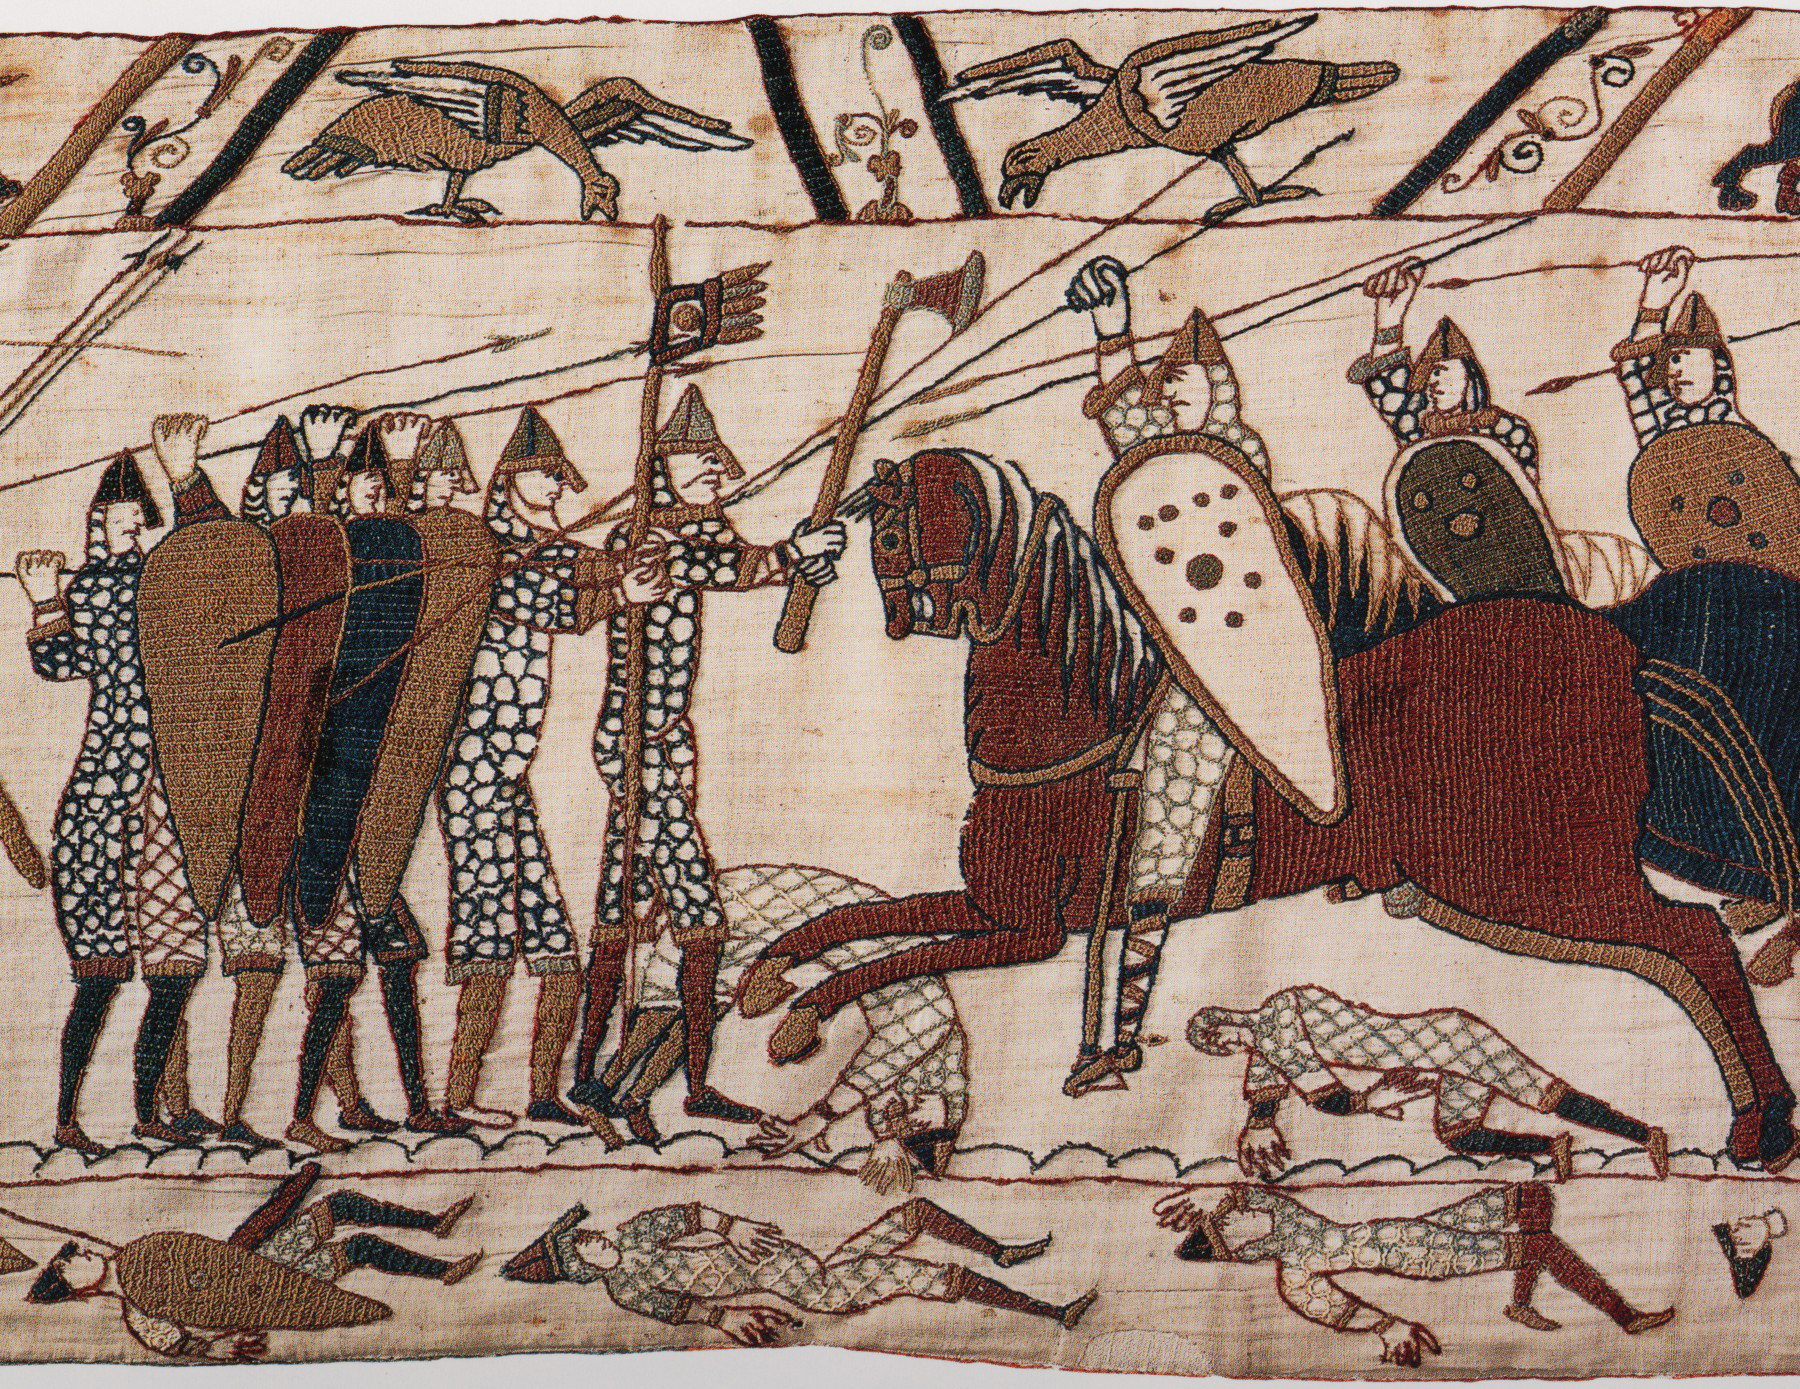 The Bayeux Tapestry shows the Battle of Hastings. Shortly after the battle William the Conqueror ordered the building of Berkhamsted Castle